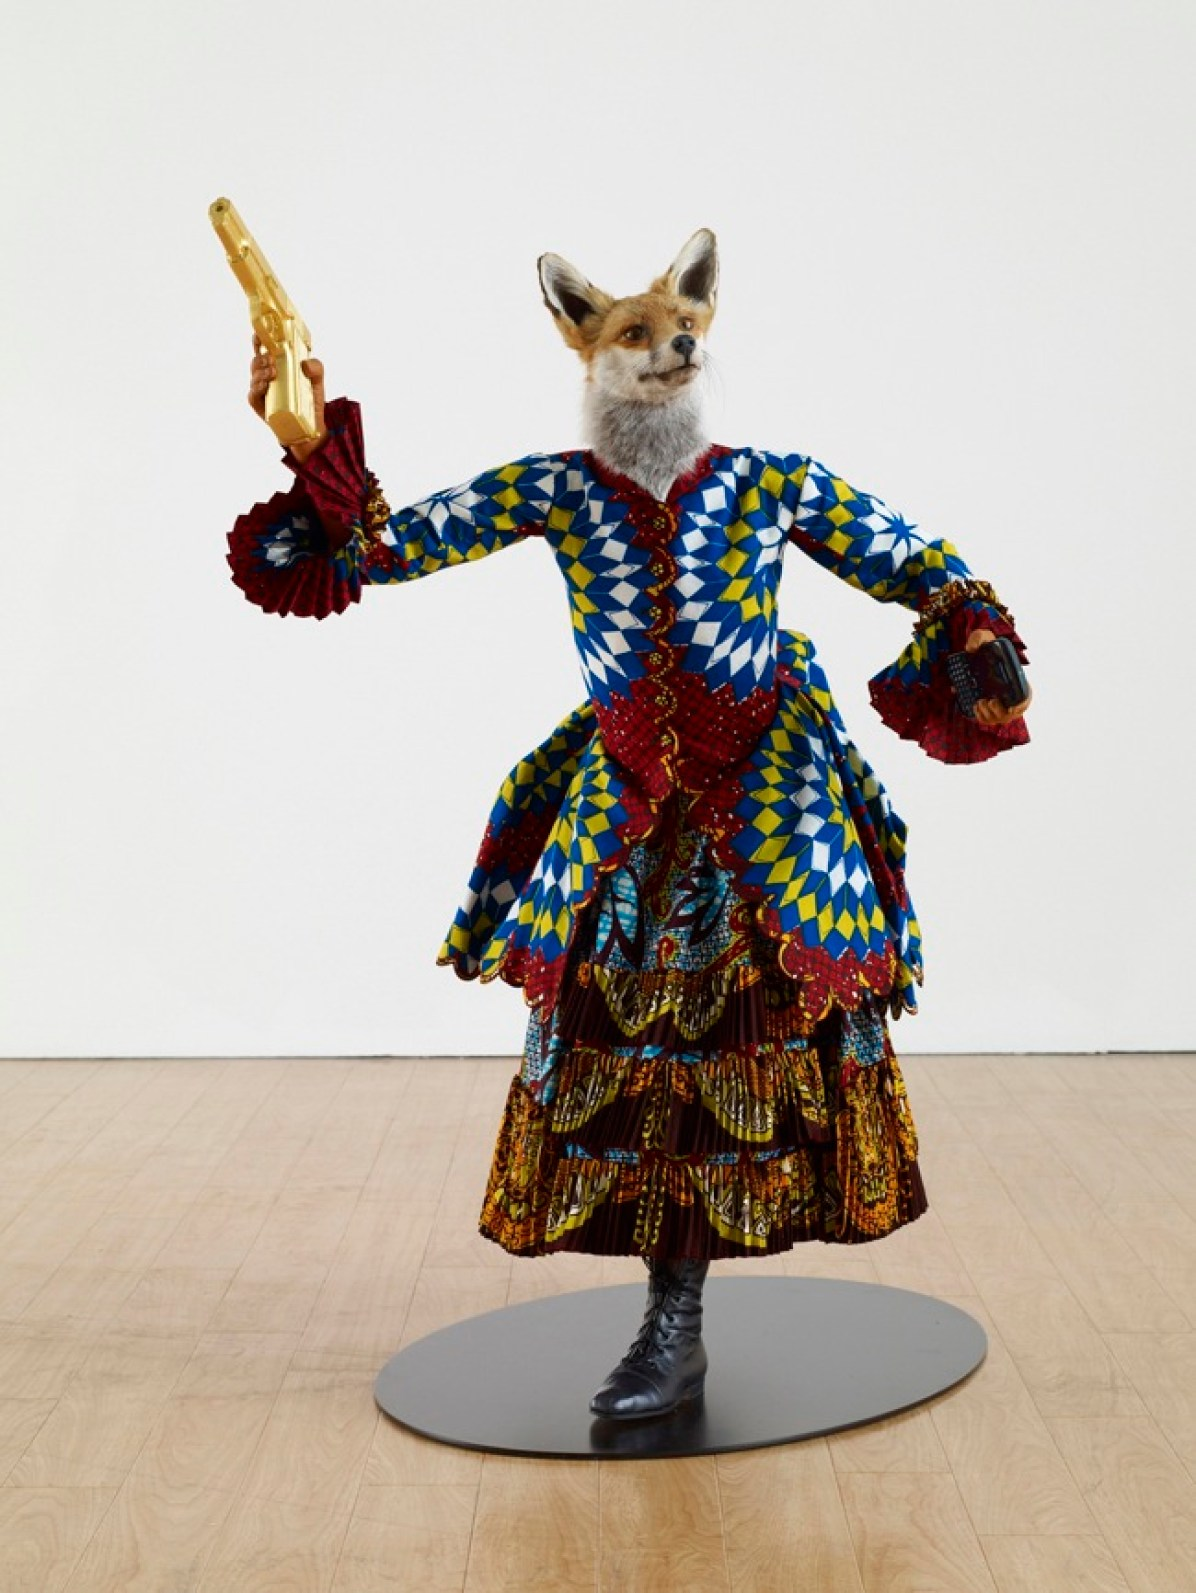 Yinka Shonibare MBE Revolution Kid (fox girl), 2012 Mannequin, Dutch wax printed cotton, fibreglass, leather, taxidermy fox head, steel base plate, BlackBerry and 24 carat gold gilded gun 111.8 x 91.4 x 76.2 cm Courtesy of the artist and James Cohan Gallery, New York and Shanghai